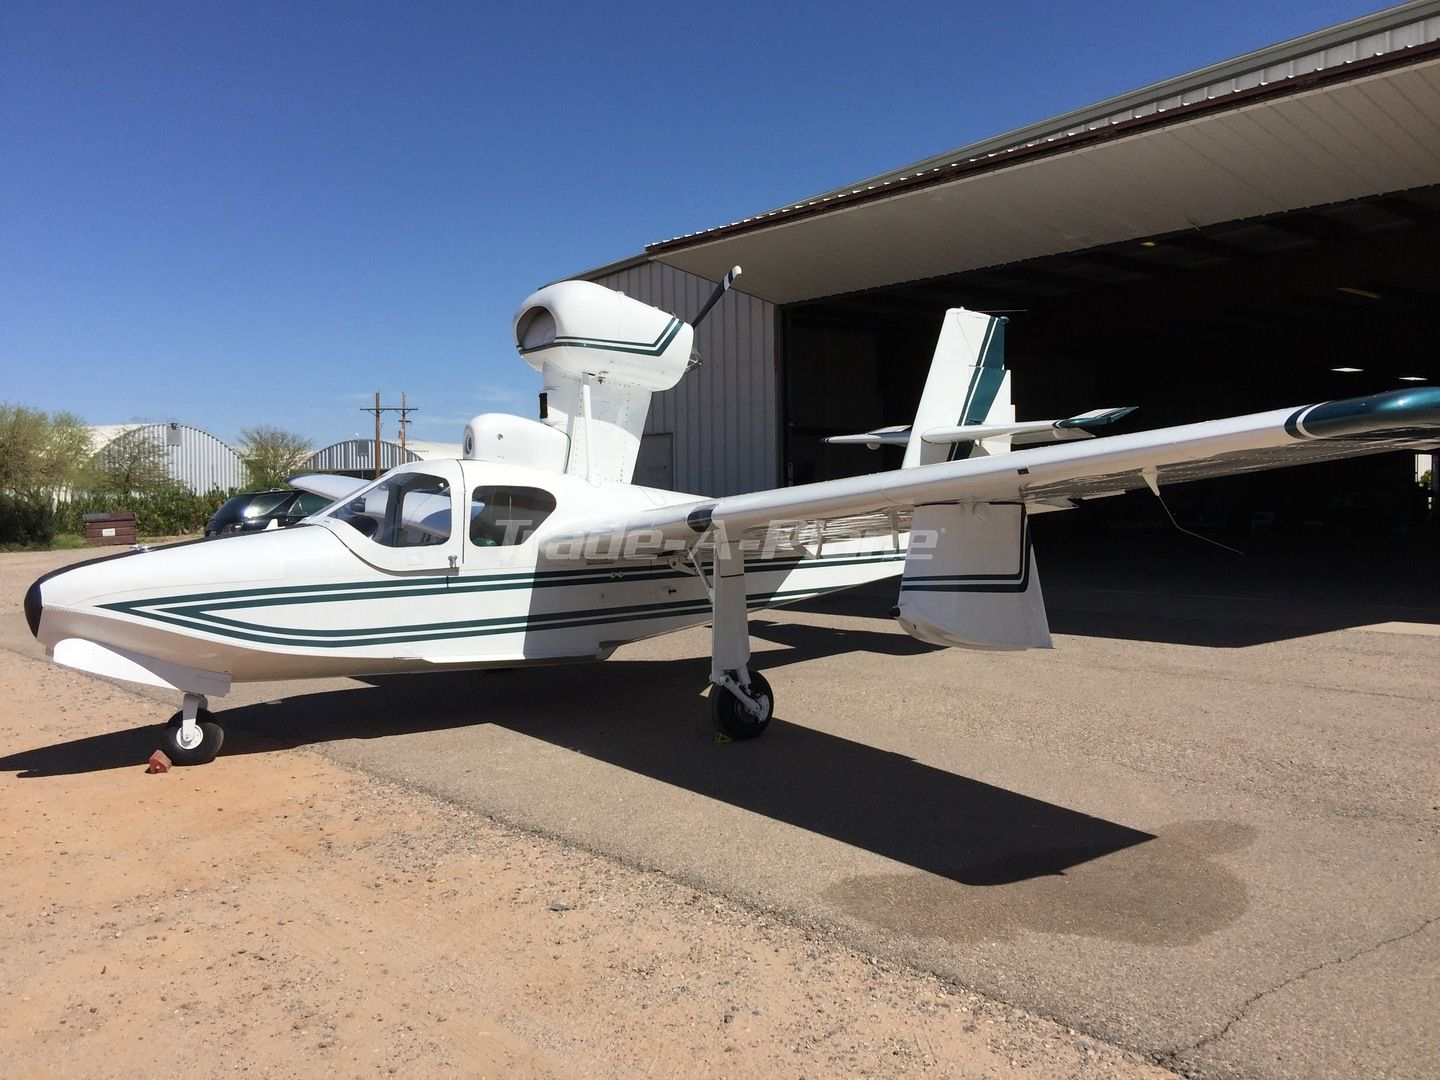 Aircraft Listing - Lake LA-4-180 listed for sale